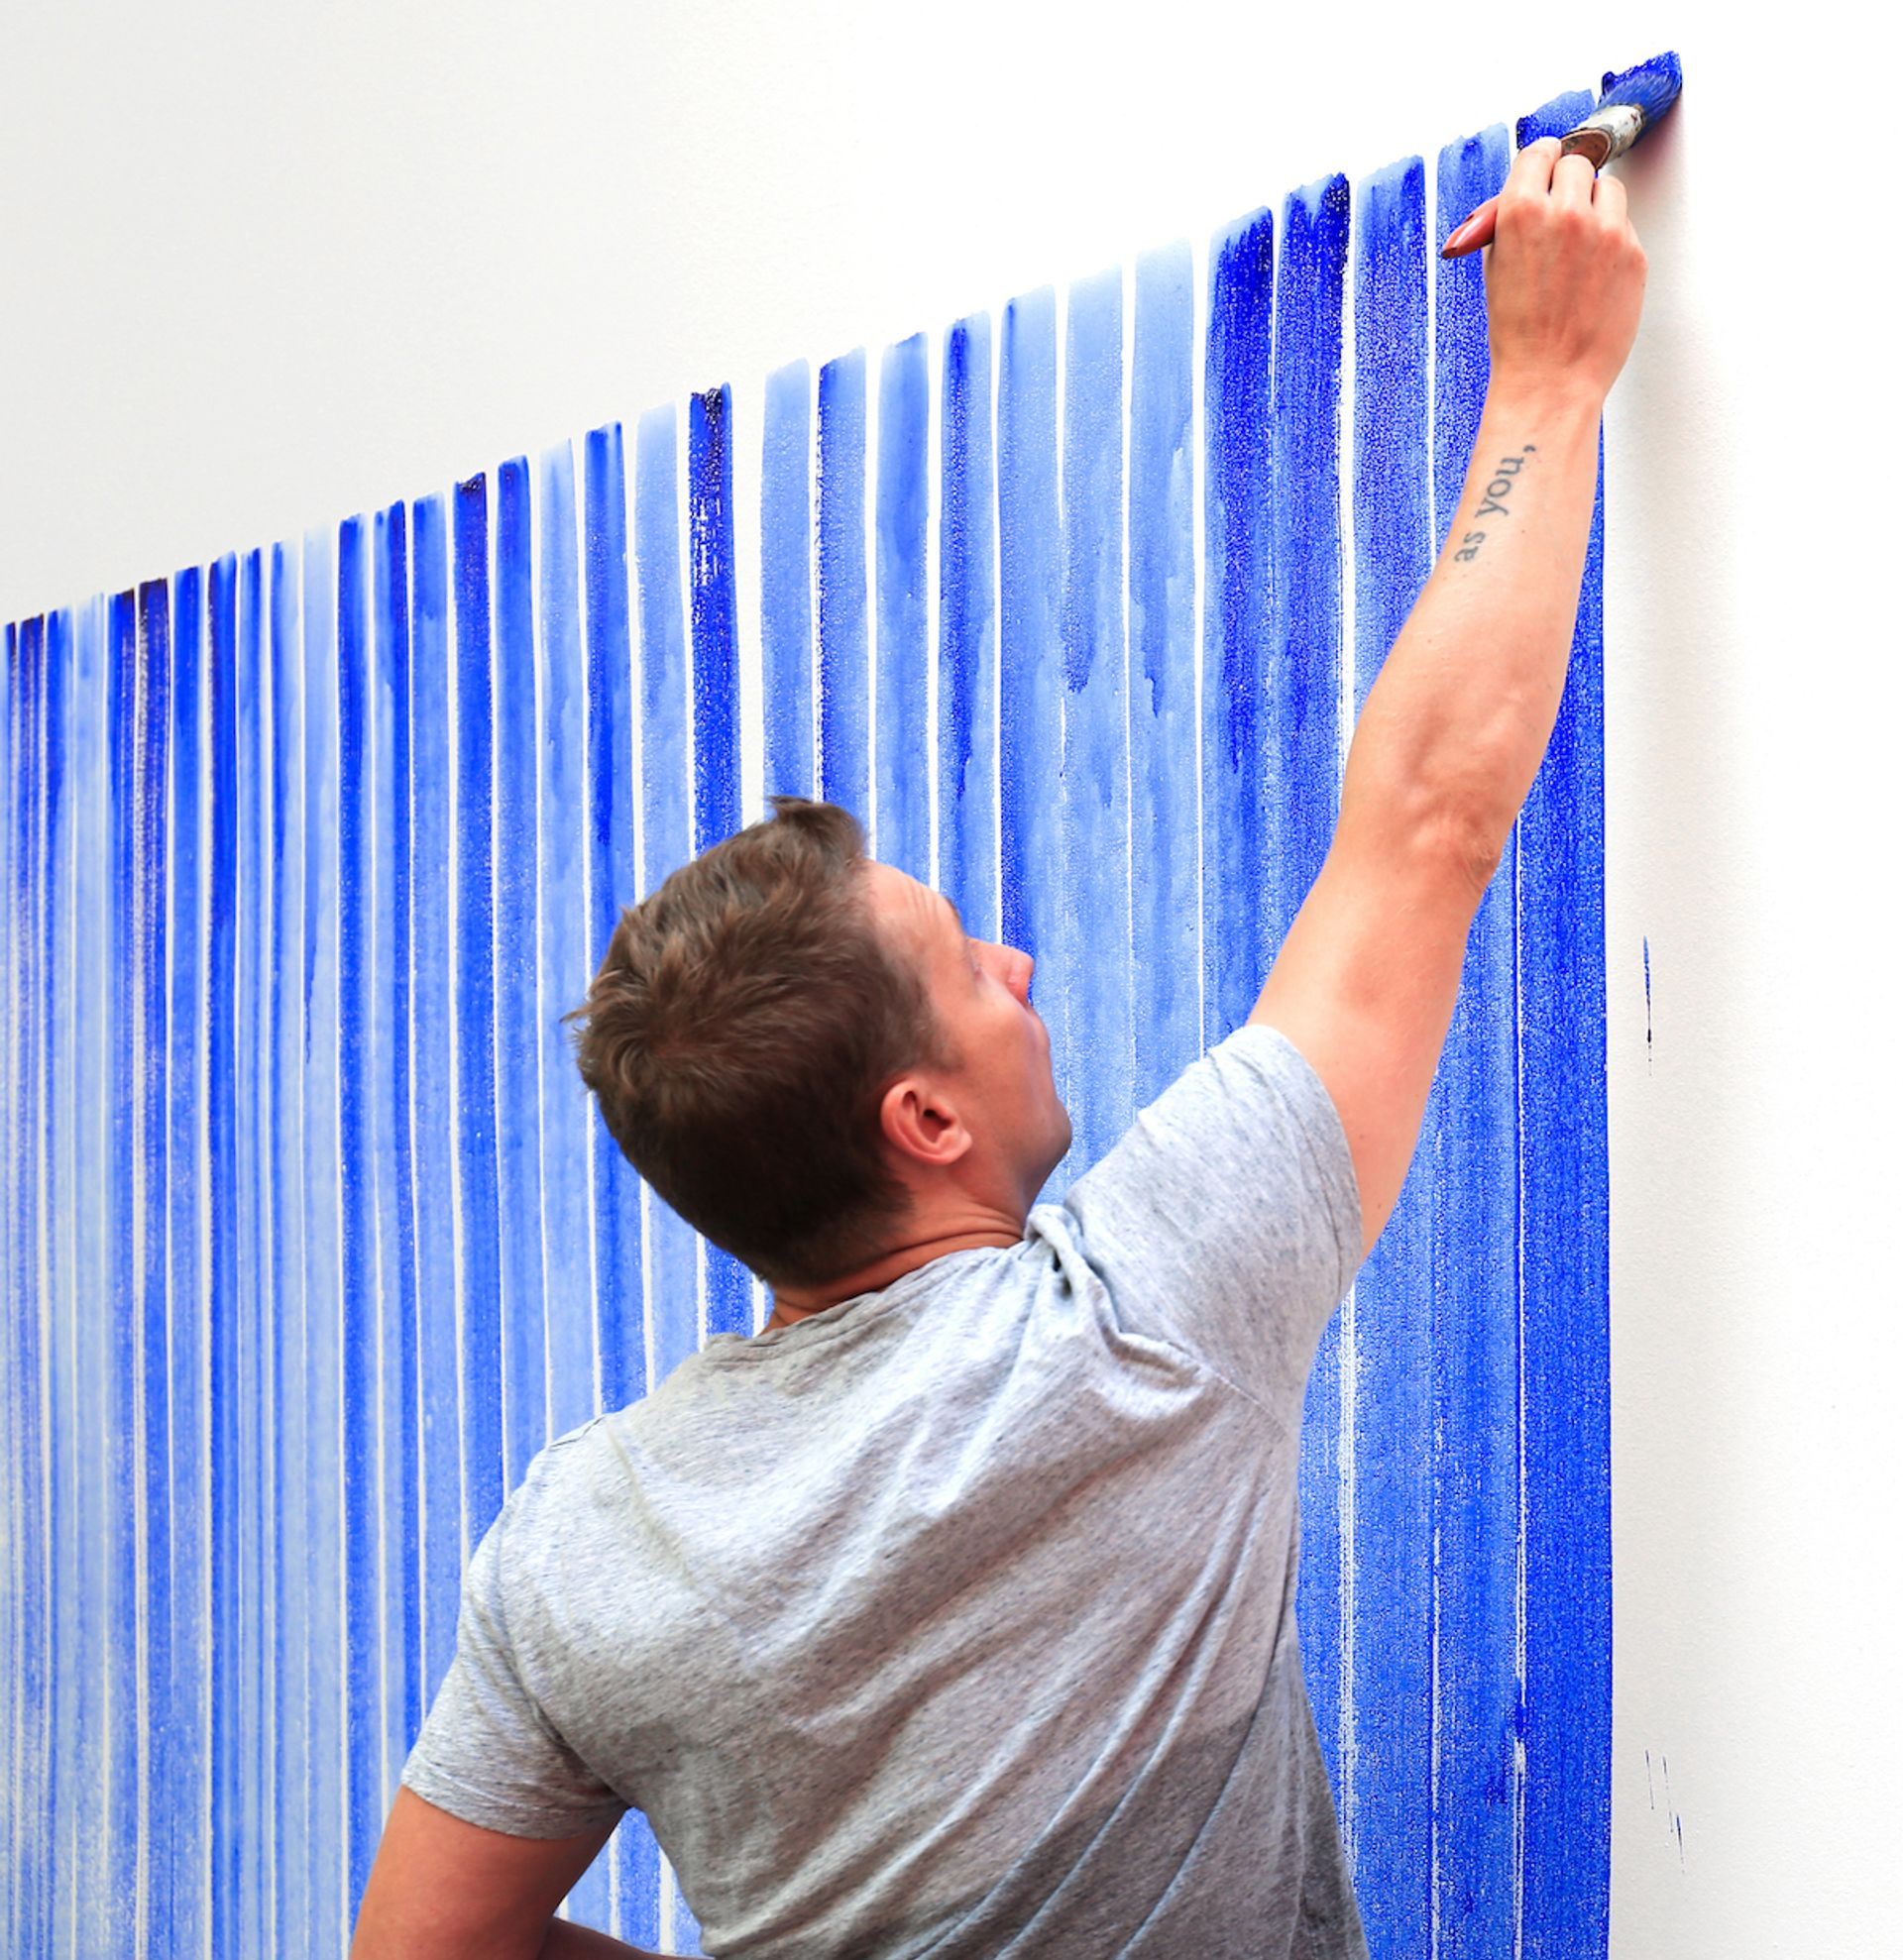 Jeppe Hein painting Breathing Watercolours on a wall Photo: Hendrik Hähner/Studio Jeppe Hein and courtesy of Jeppe Hein